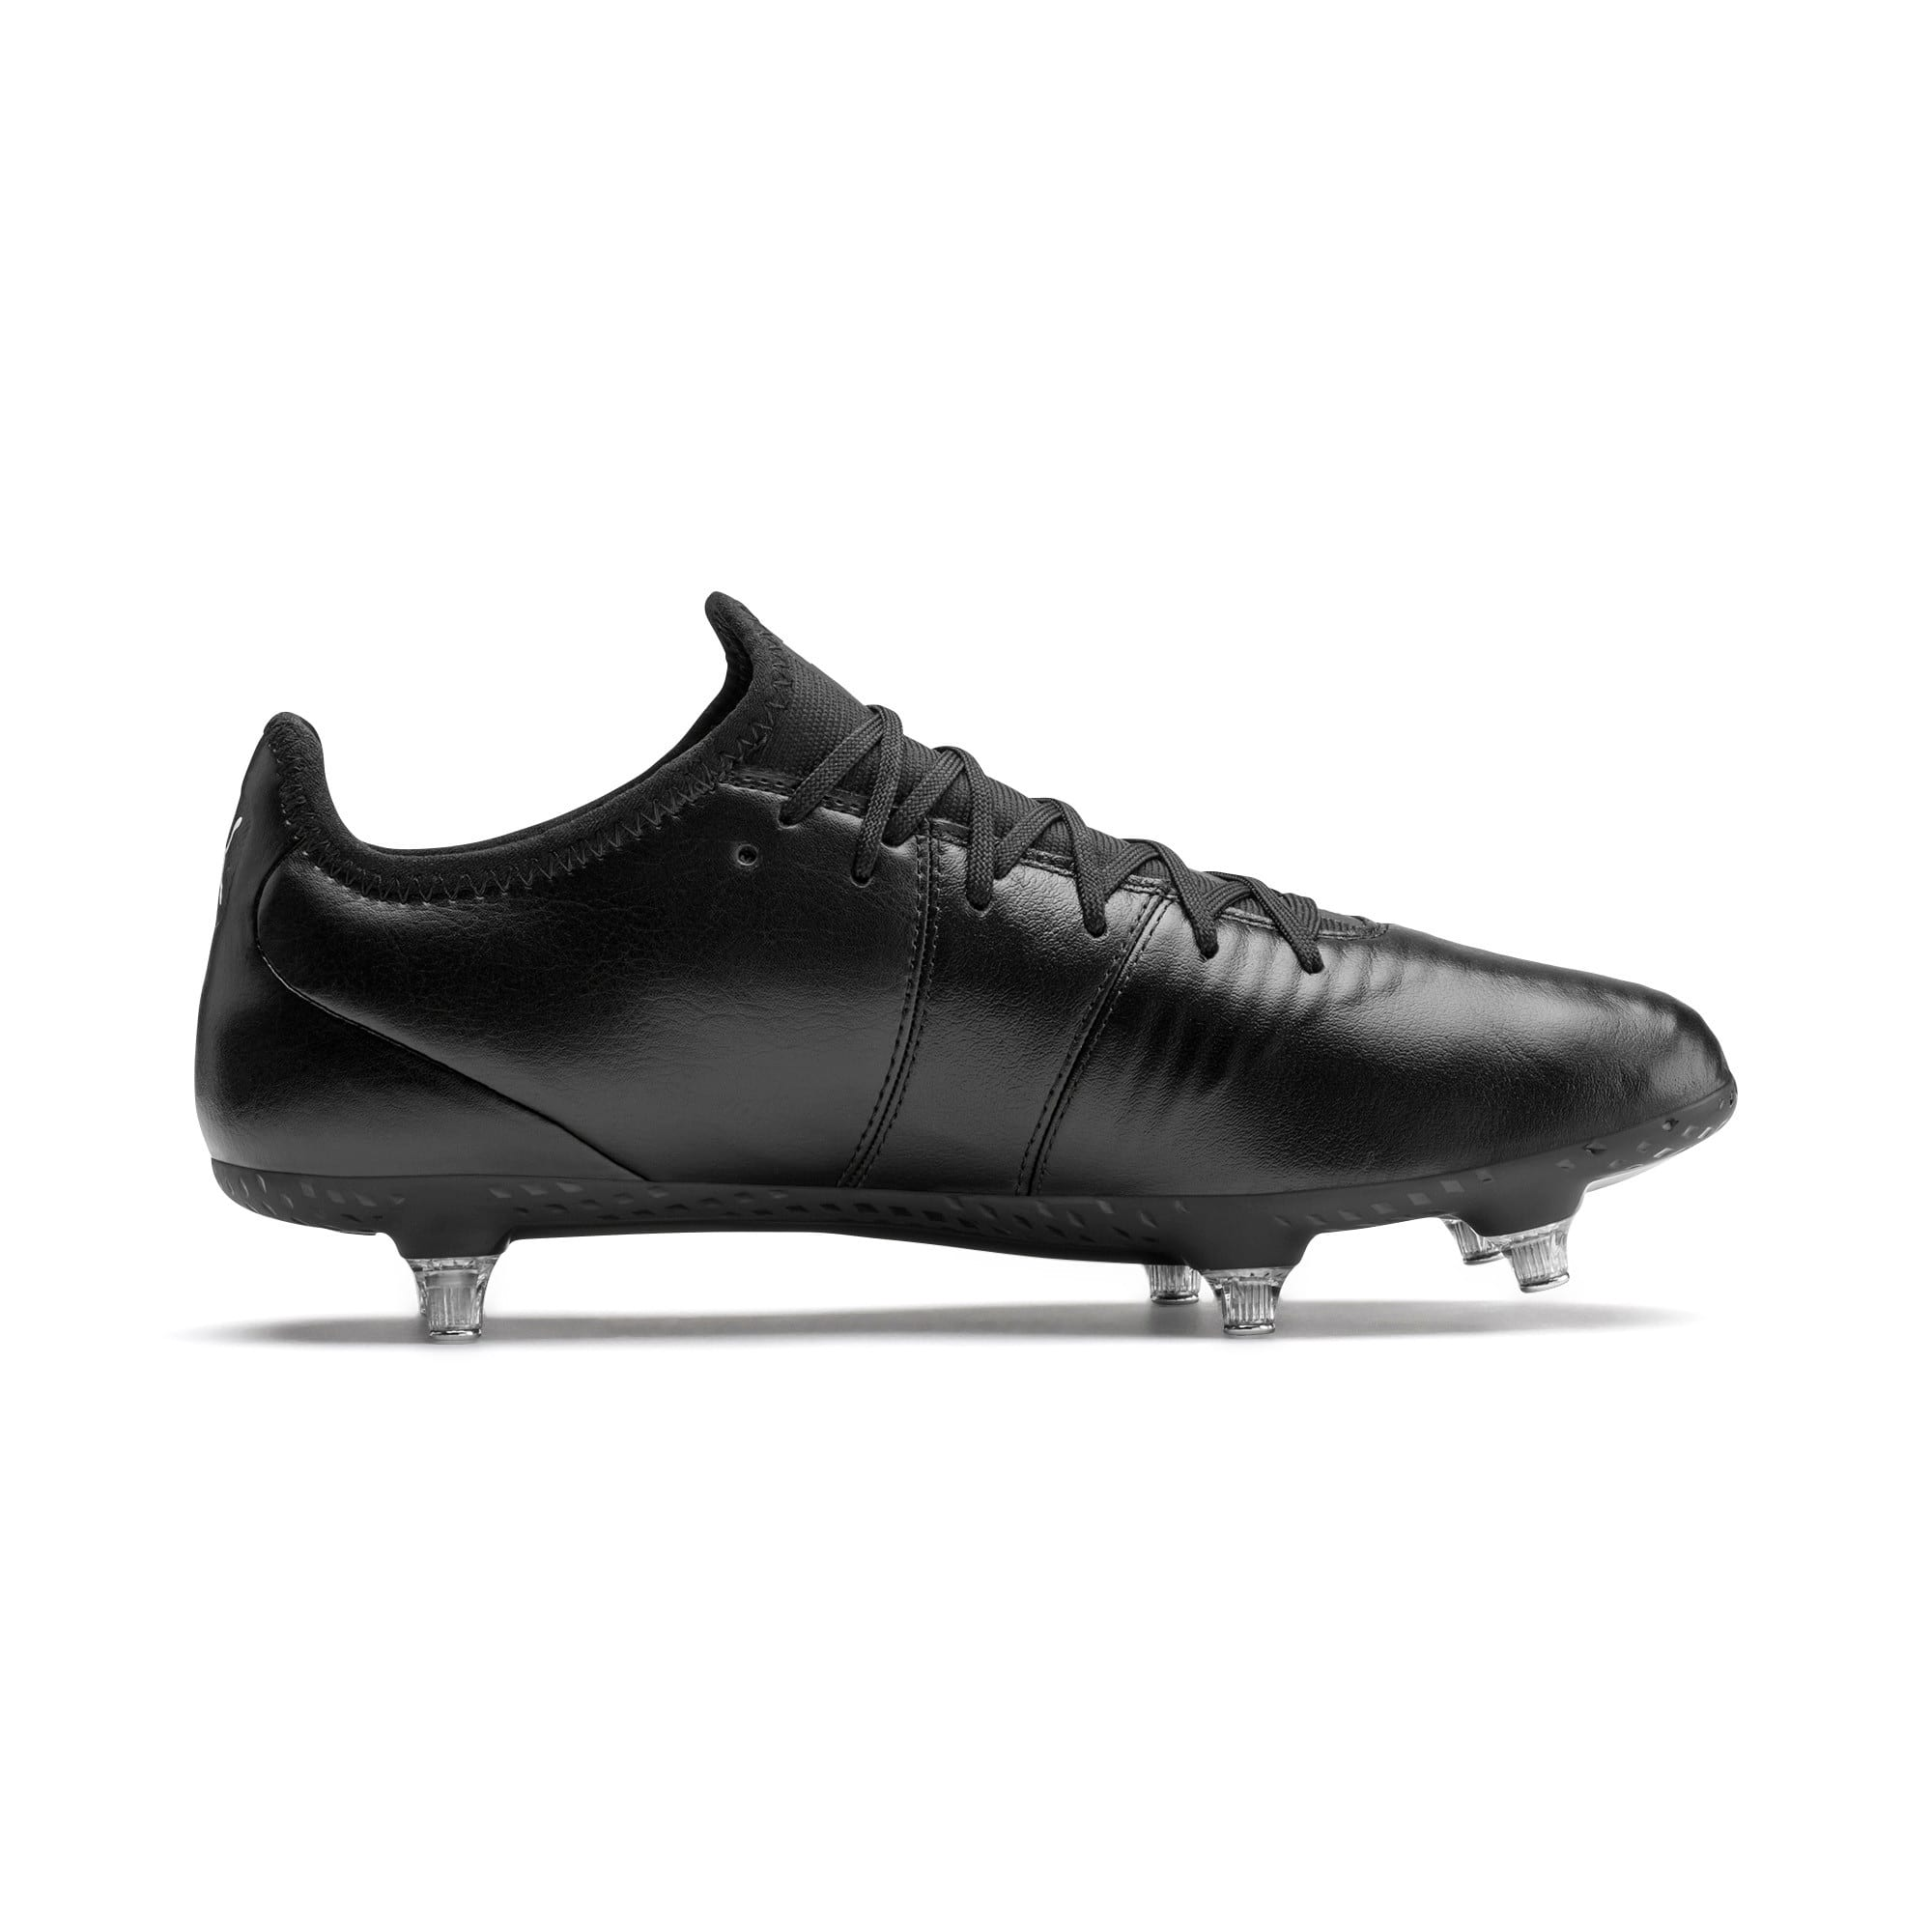 Thumbnail 6 of KING SG Men's Football Boots, Puma Black-Puma White, medium